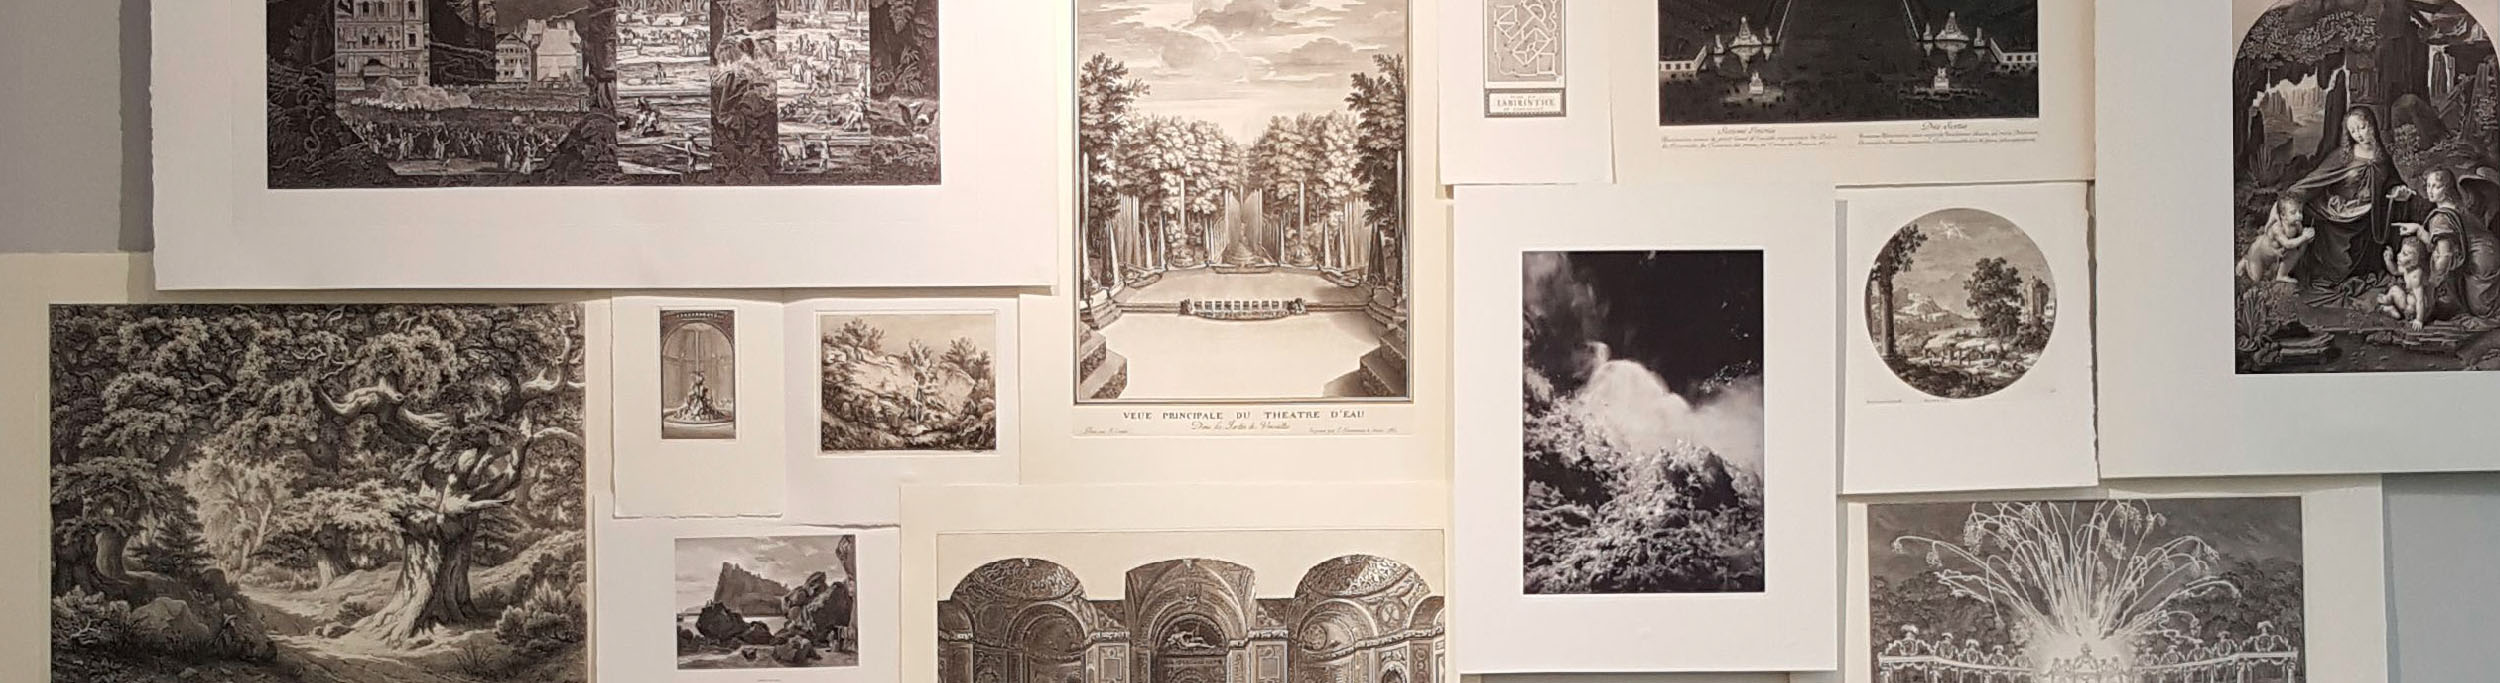 Wall decoration ideas: prints and engravings from the Louvre